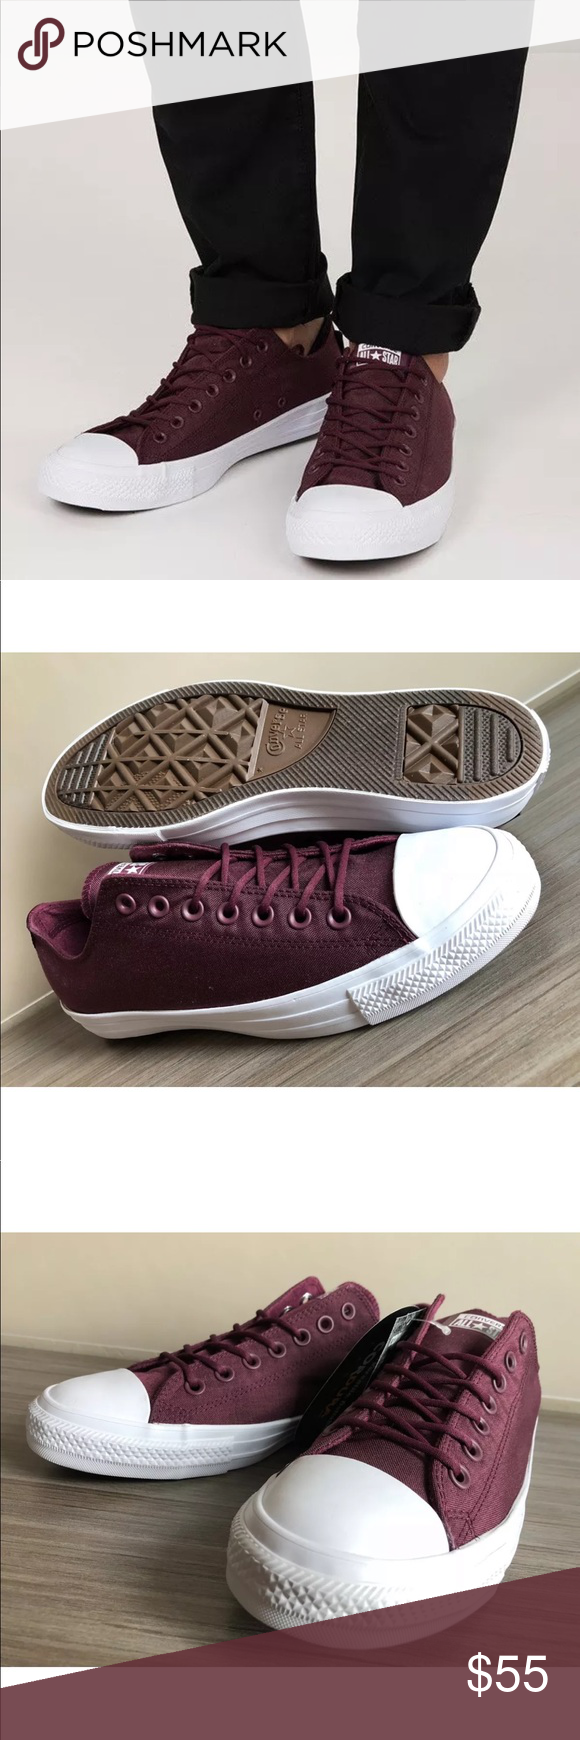 7a56e83beab6 Men s Converse Chuck Taylor All Star Ox Corduro AUTHENTIC CONVERSE CHUCK  ALL STAR OX MEN S SHOES WITH CORDURA FABRIC MEN S SIZES COLOR  DARK SANGRIA  DARK ...